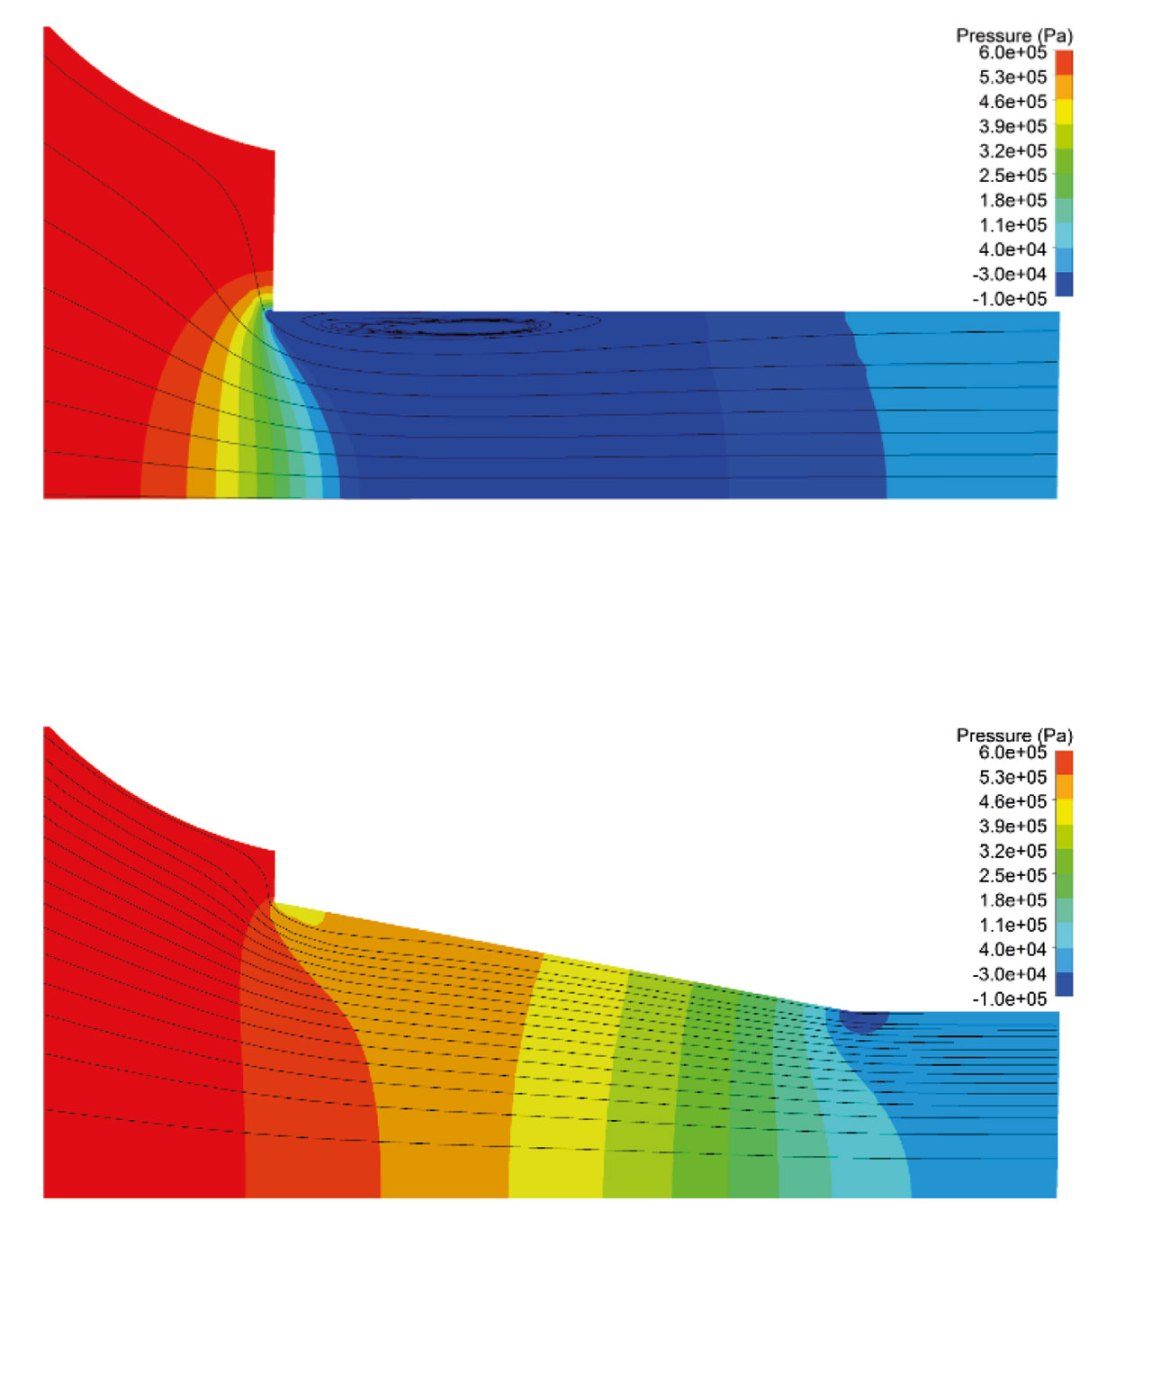 Figure 7. Streamlines and pressure distributions in the nozzle.